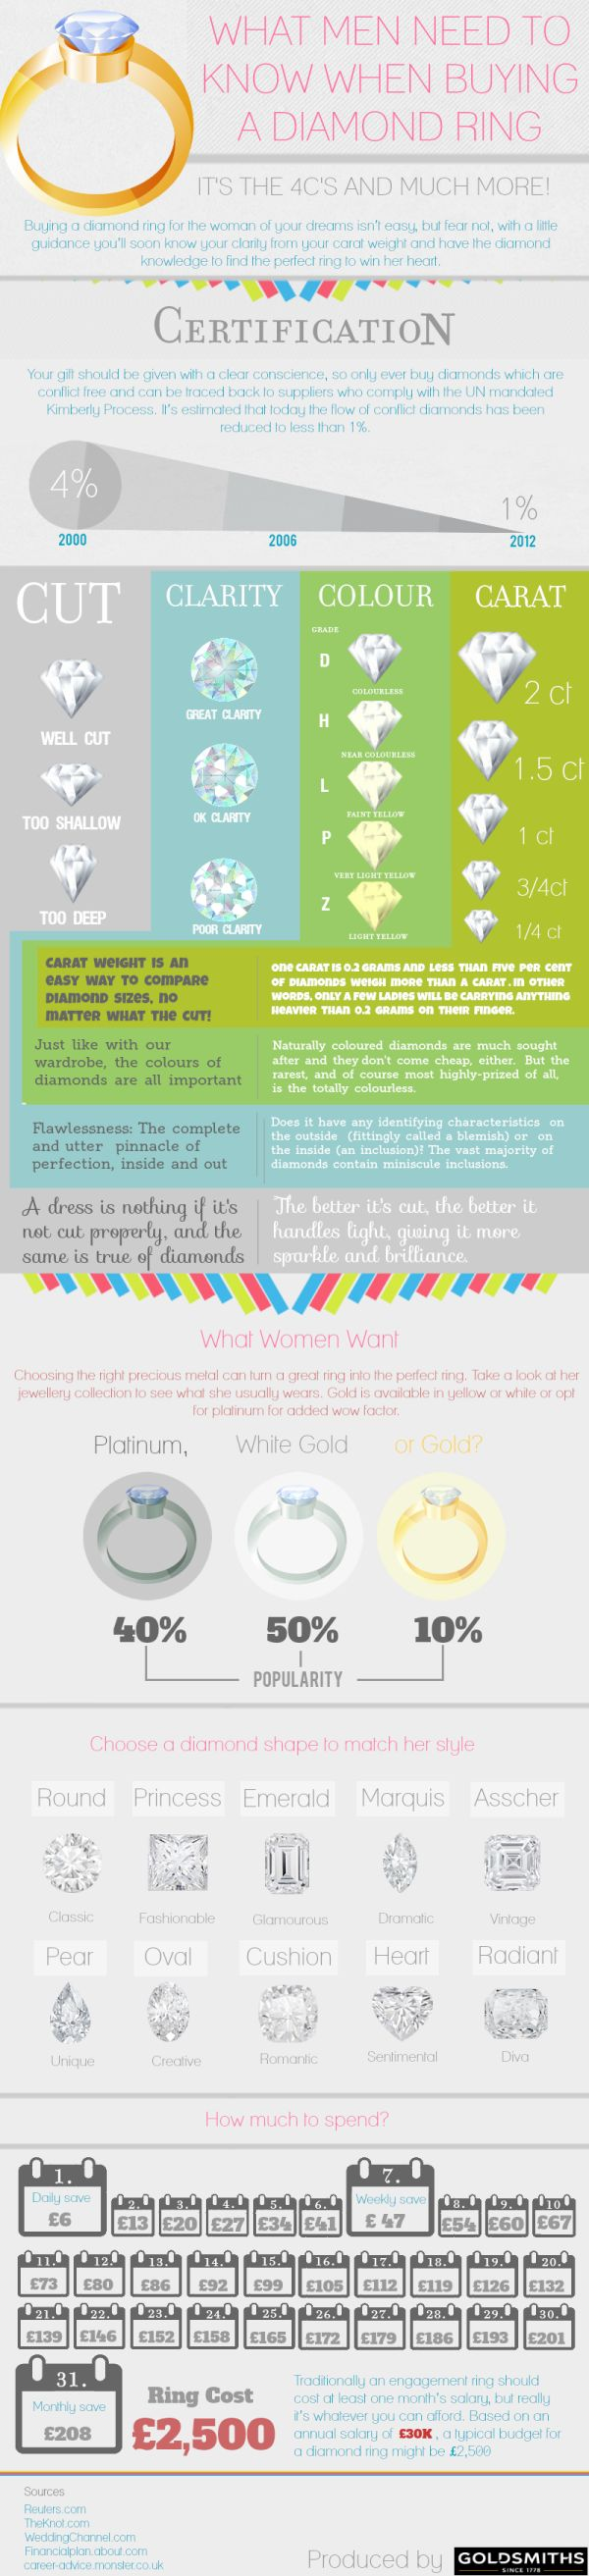 What-Men-Need-To-Know-When-Buying-A-Diamond-Ring-Infographic-infographicsmania.png 600×2,625 pixels